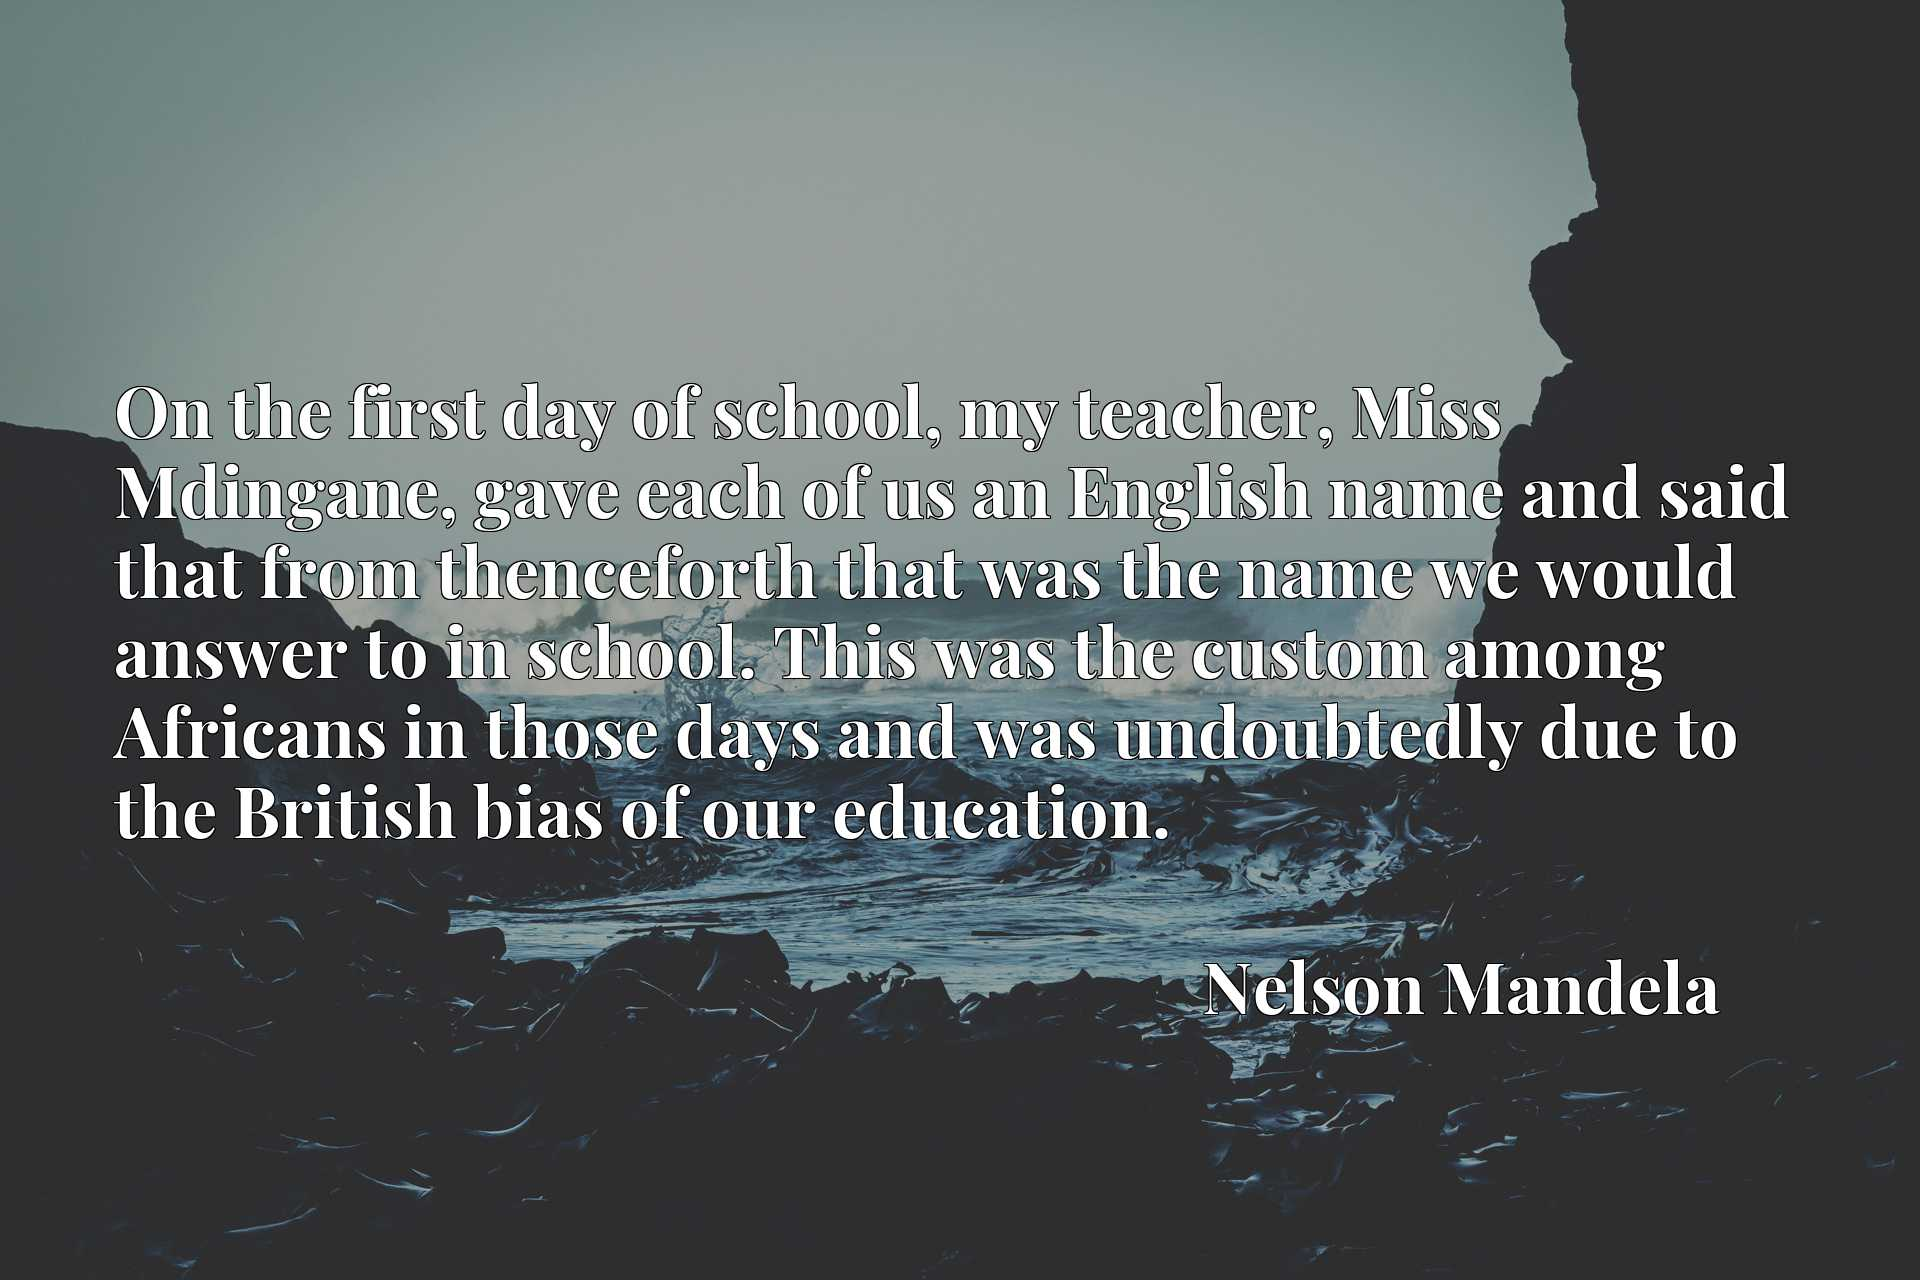 On the first day of school, my teacher, Miss Mdingane, gave each of us an English name and said that from thenceforth that was the name we would answer to in school. This was the custom among Africans in those days and was undoubtedly due to the British bias of our education.